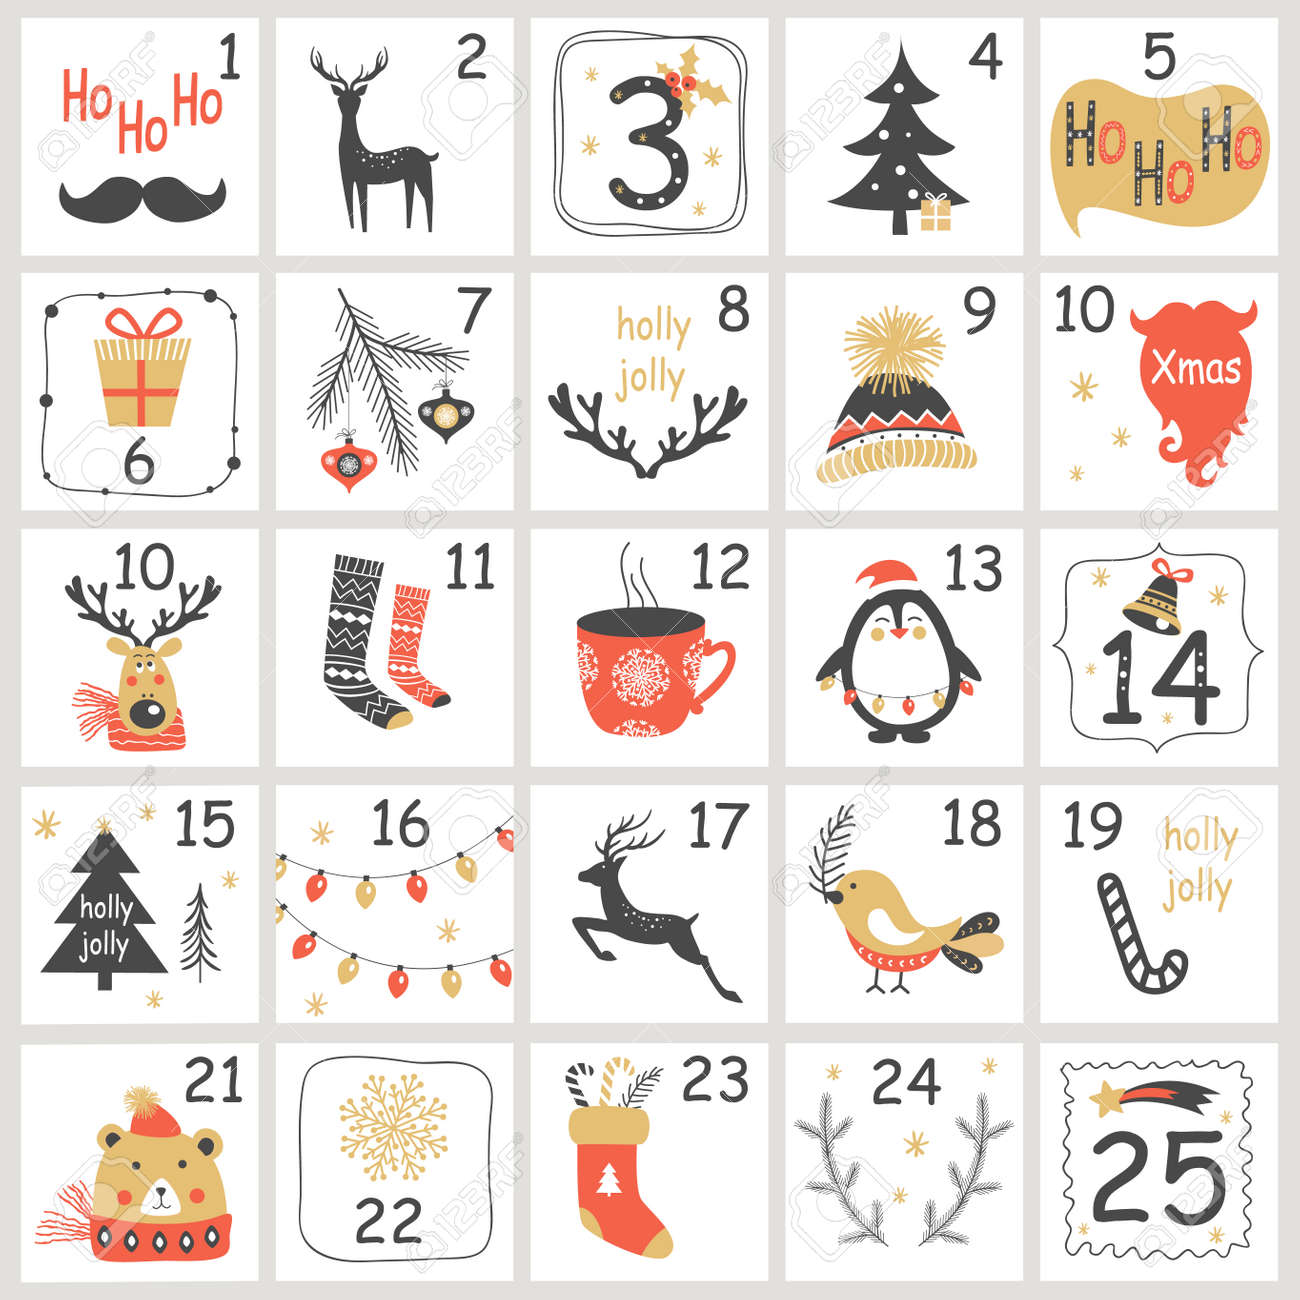 Christmas Advent calendar with hand drawn elements. Xmas Poster Vector illustration - 91833505